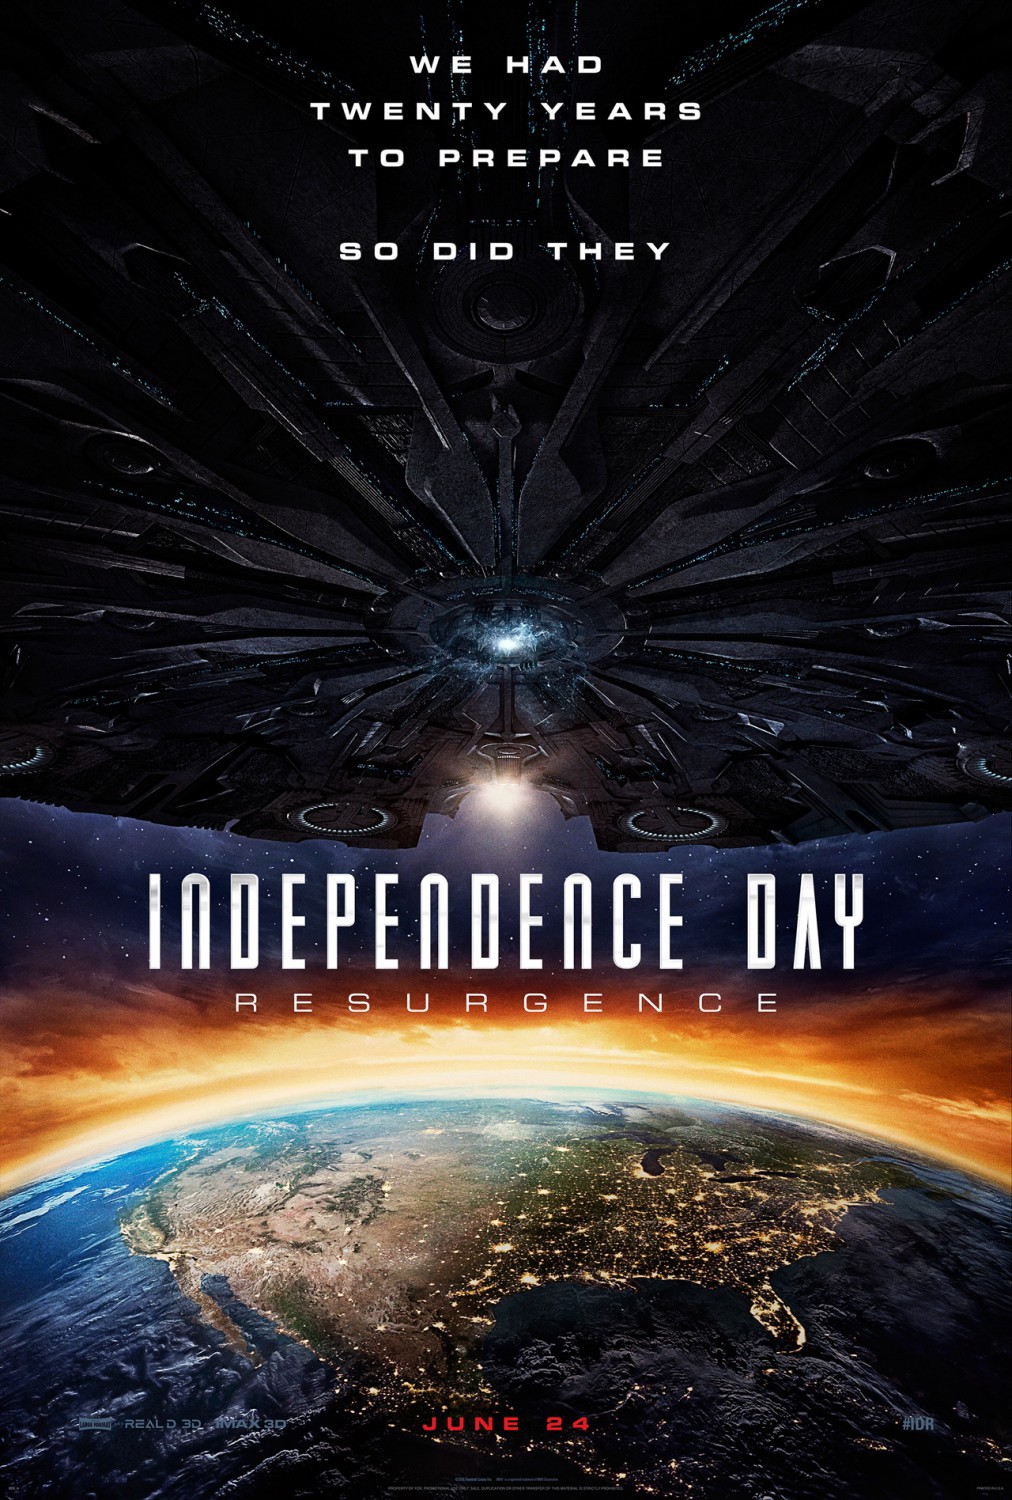 Assistir, independence, day, online - HD 720p, dublado